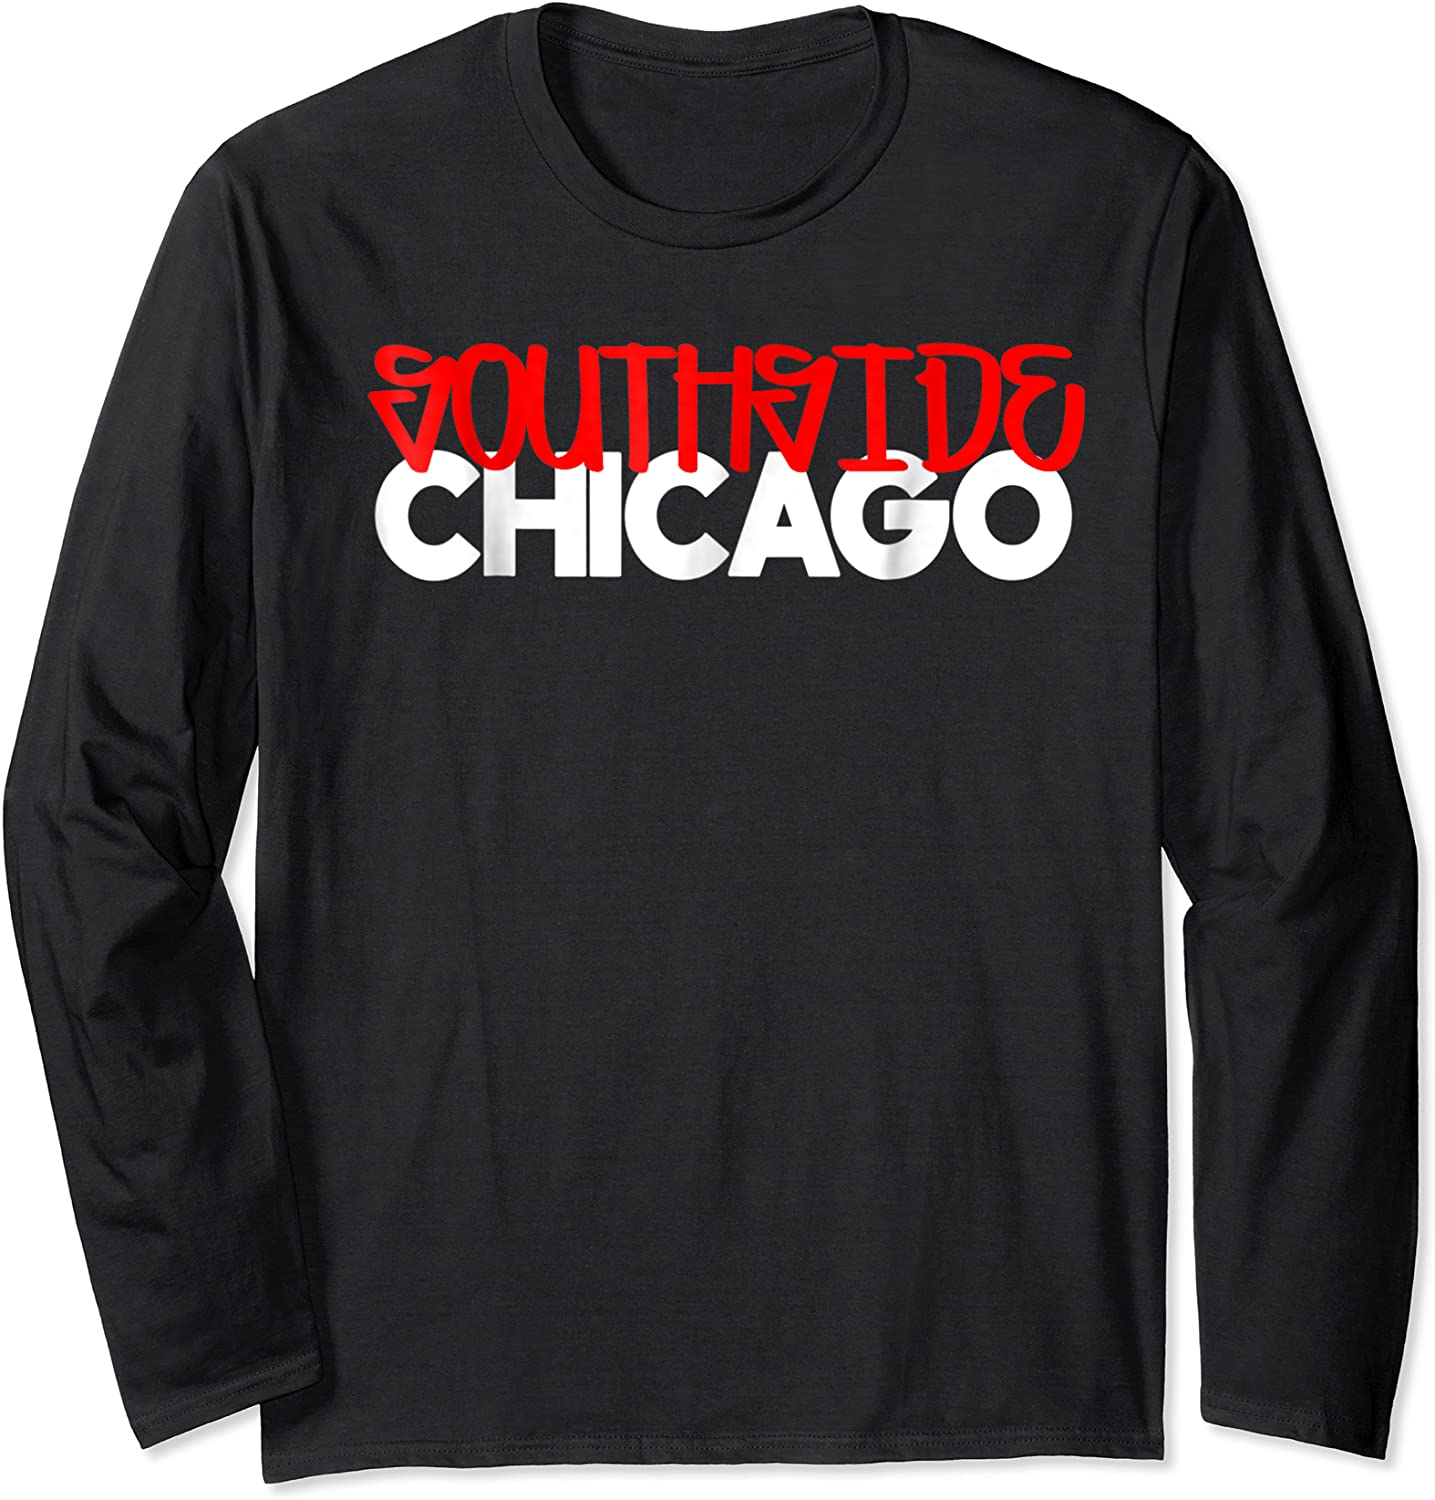 S S Chicago Shirts For | Southside Chi Shirt Long Sleeve T-shirt